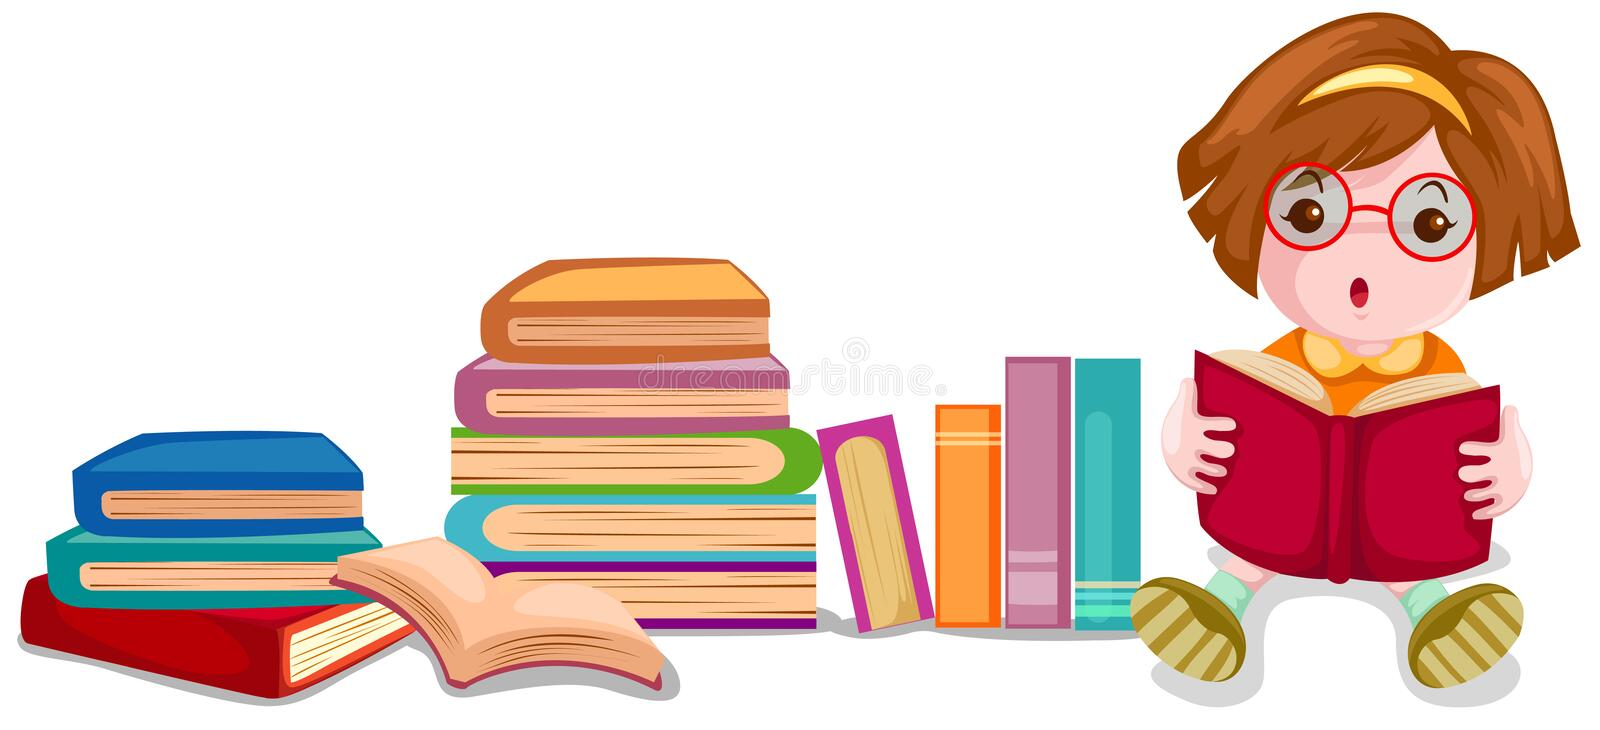 Download Cute girl reading book stock vector. Image of library - 16590839